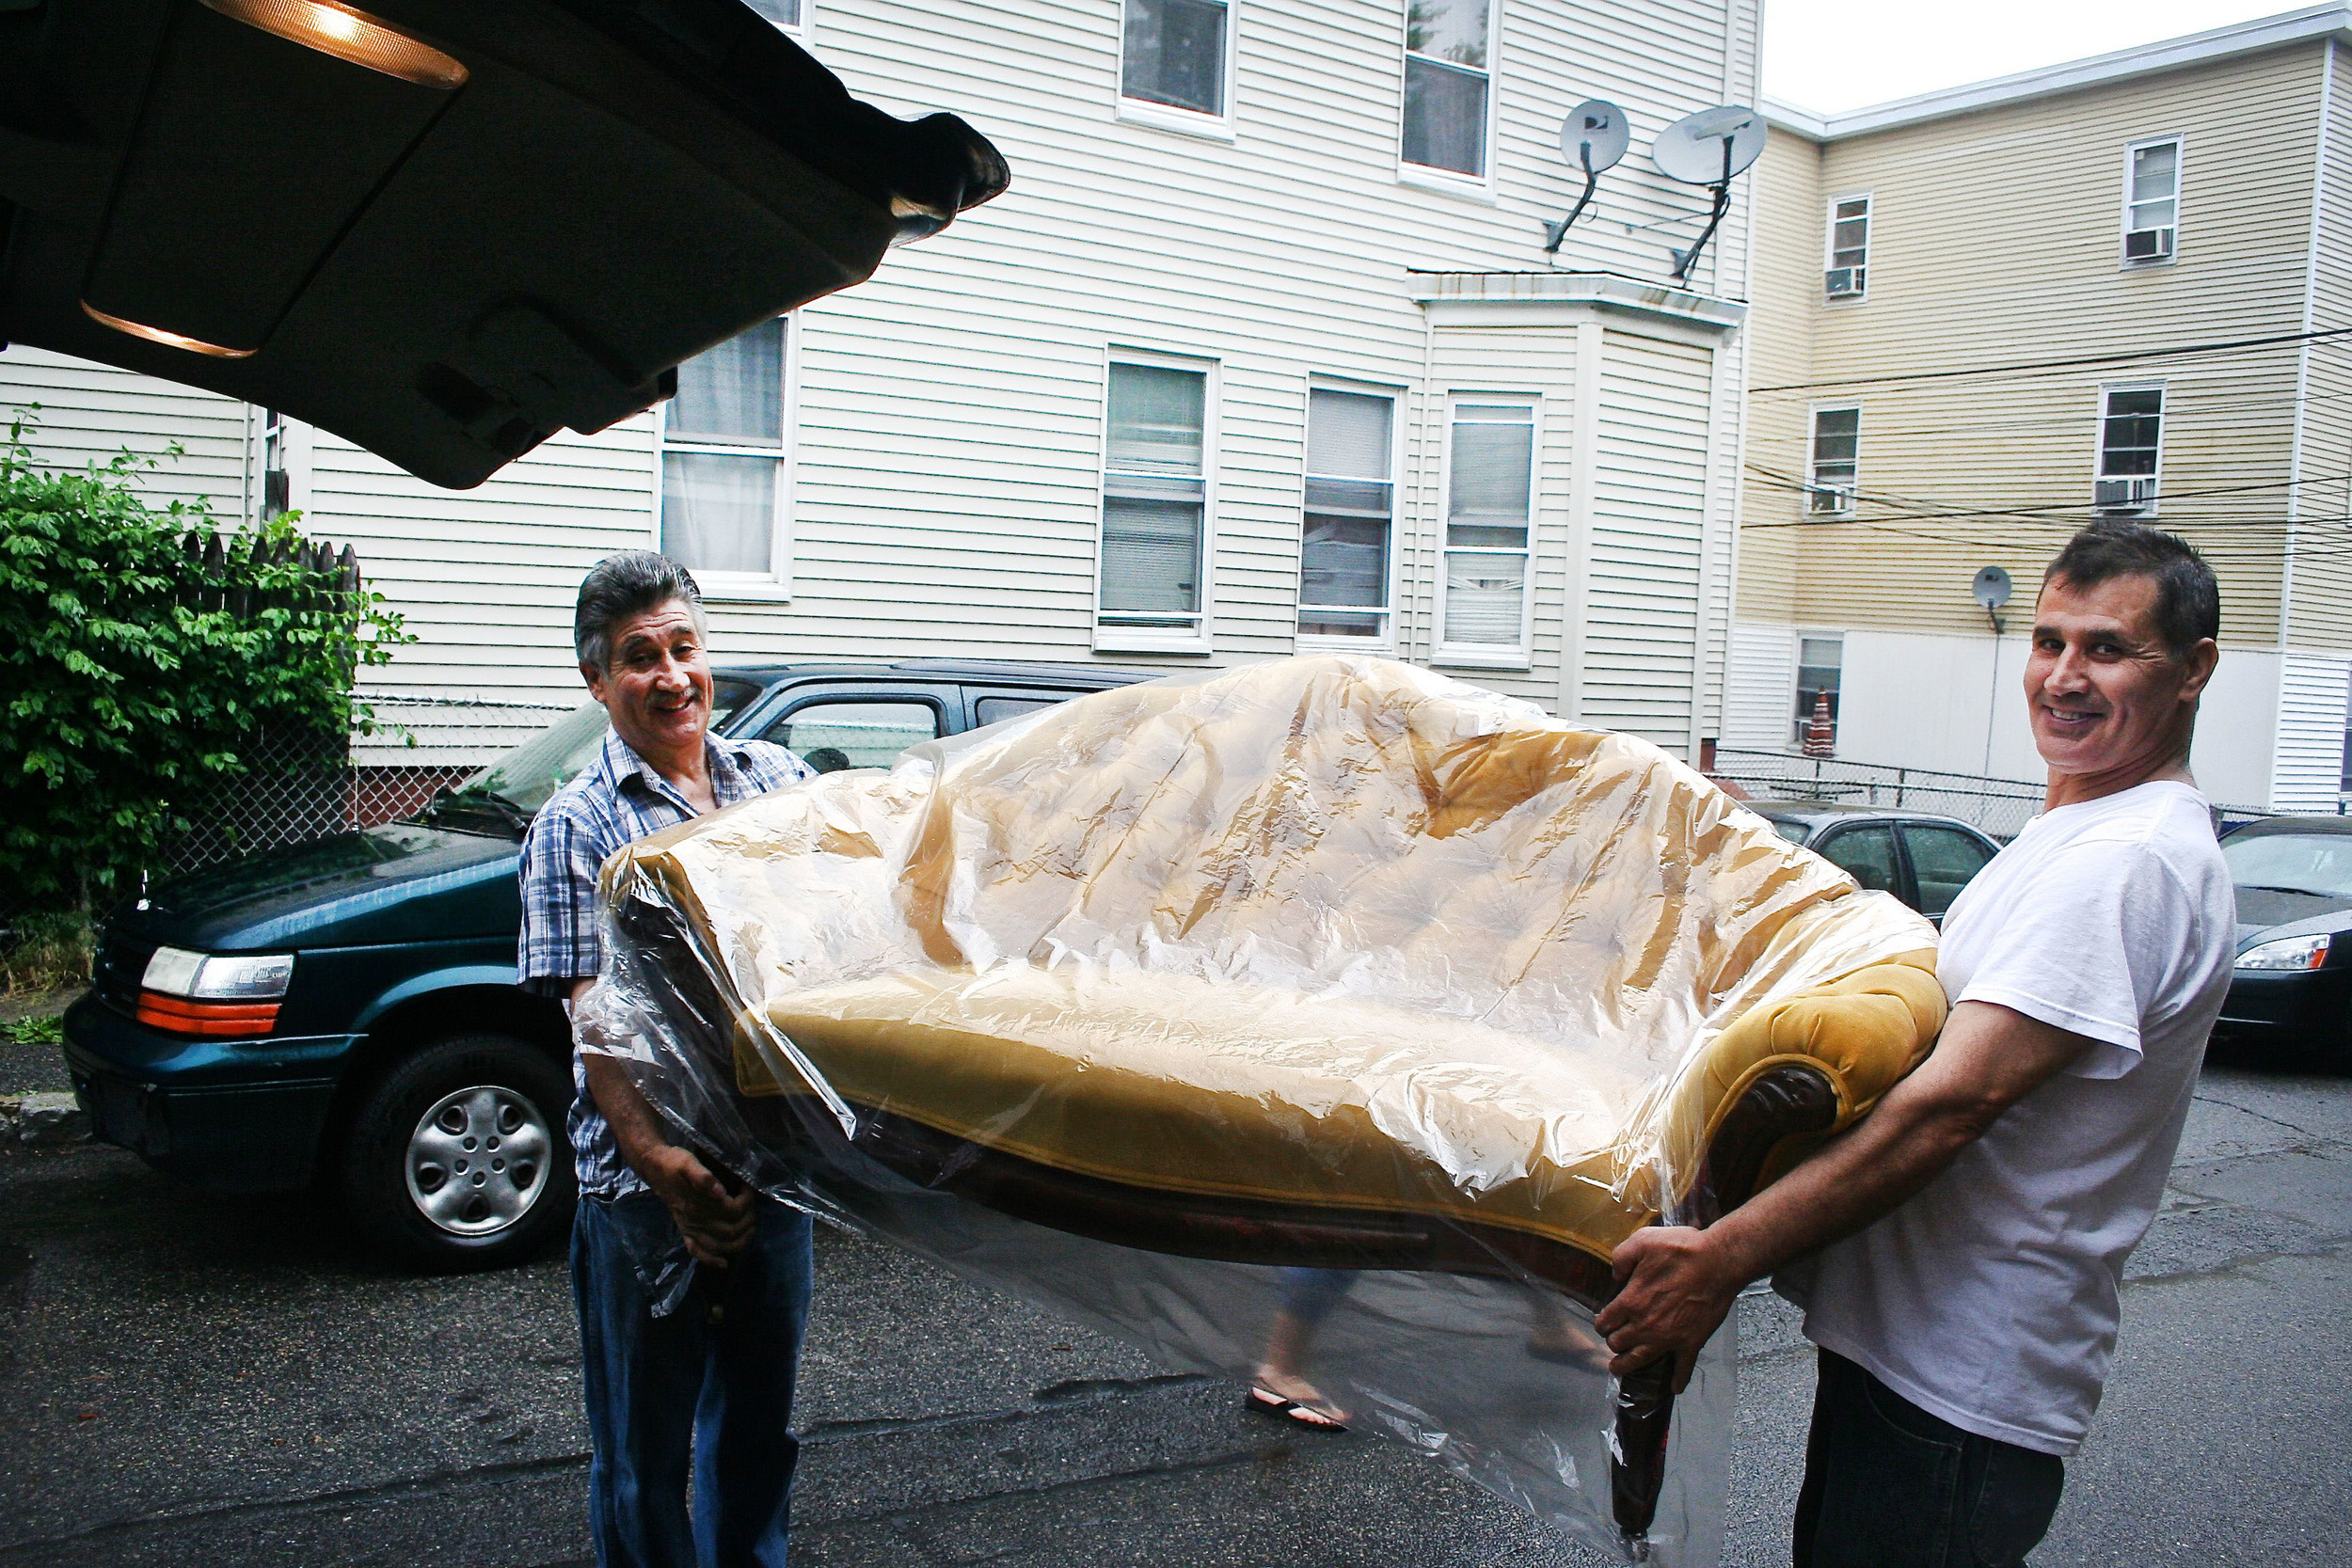 Tony & His Brother Loading our Couch